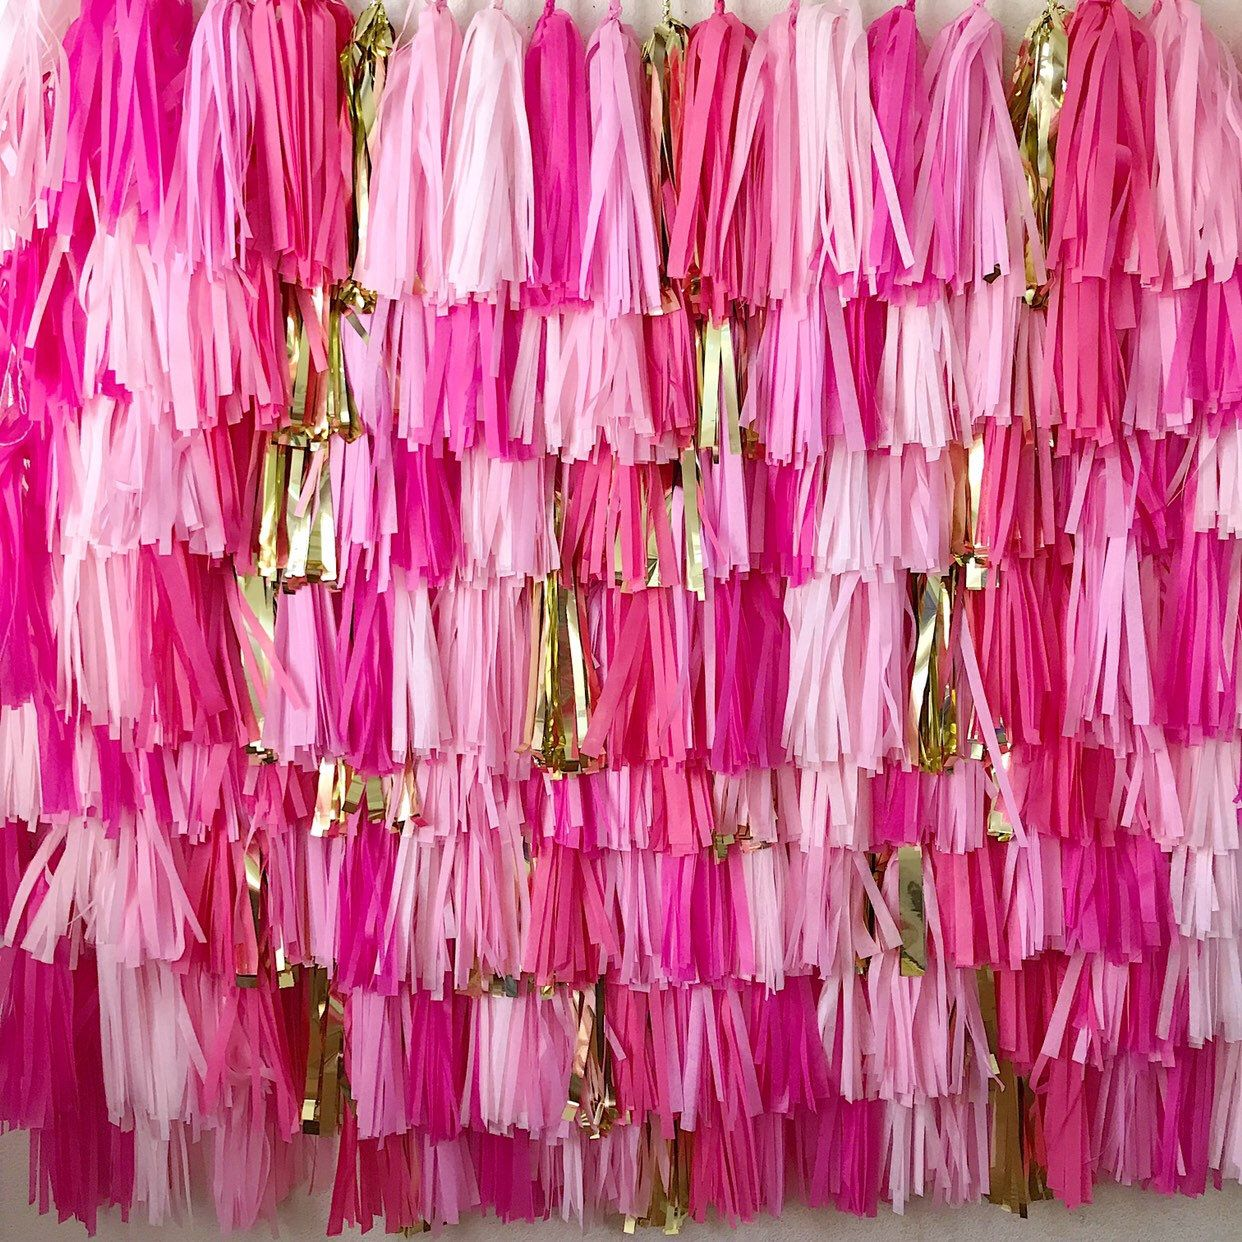 8 Piece tissue paper tassel Fringe Backdrop Wall, tassel banner Backdrop, Fringe garland Backdrop, Birthday, Party Theme, tassle